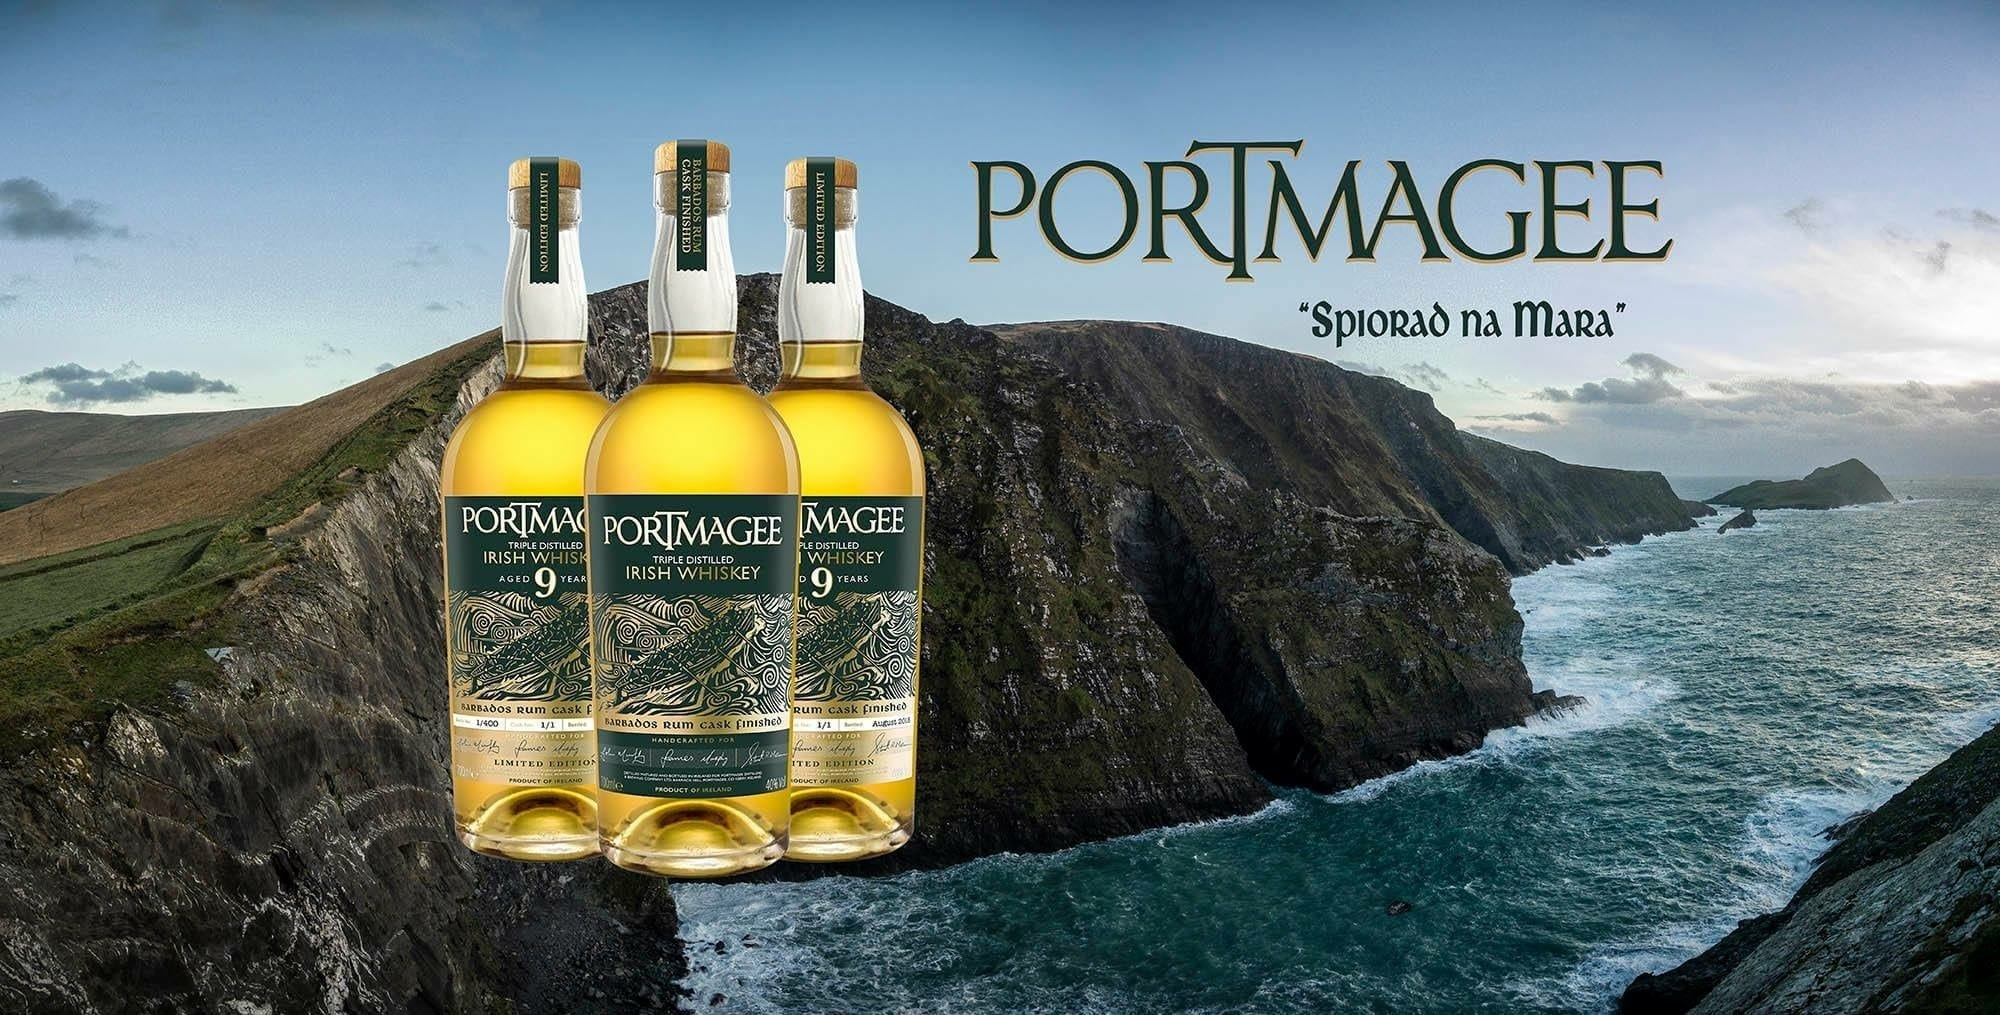 Portmagee 9 Year Old Irish Whiskey Commentaire par Stuart McNamara Irish Whiskey Blogger